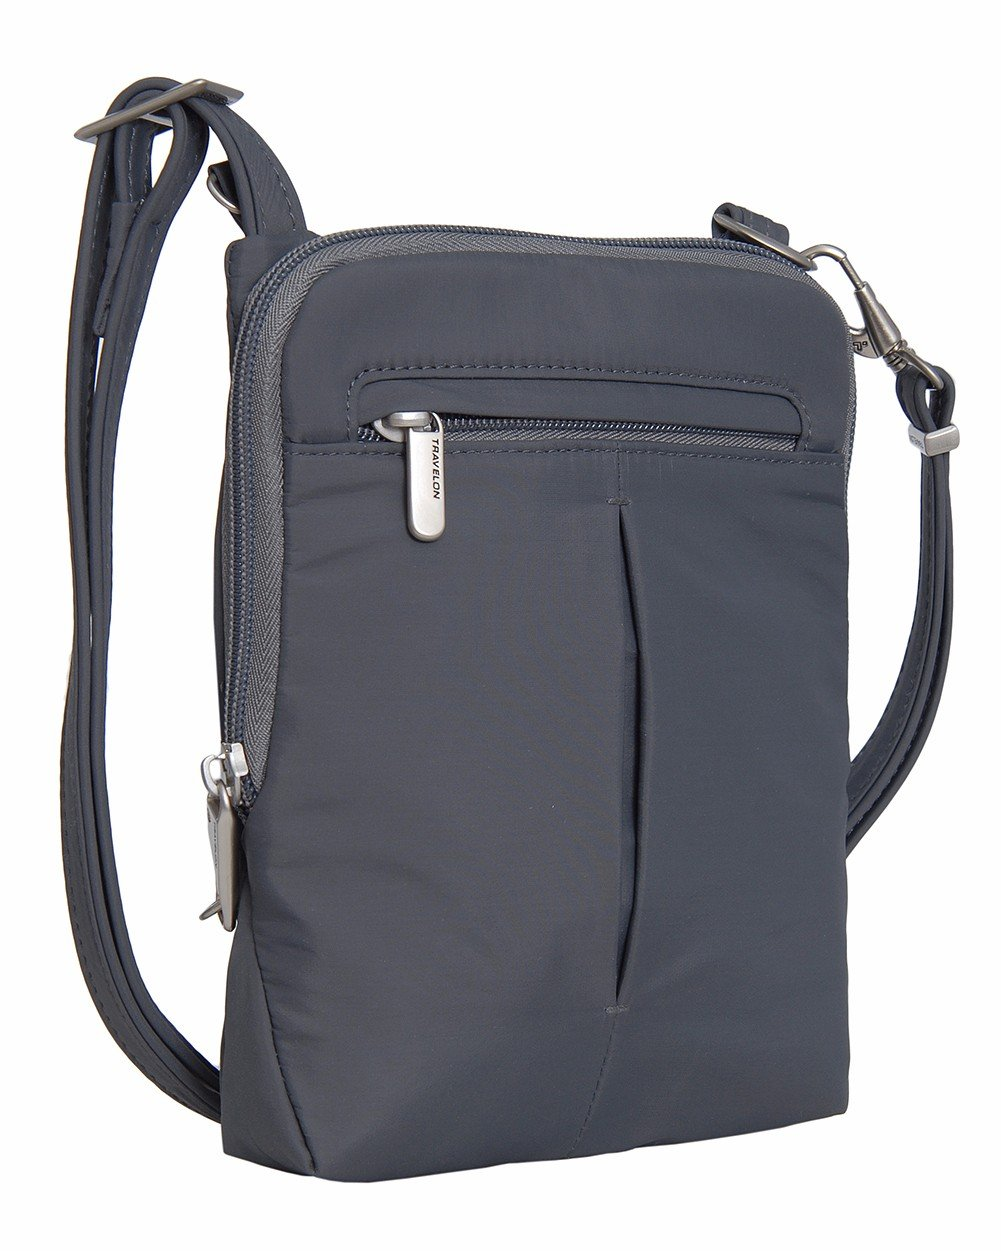 Travelon Anti-Theft Classic Light Mini Crossbody Messenger Bag (One Size, Grey - Exclusive Color)